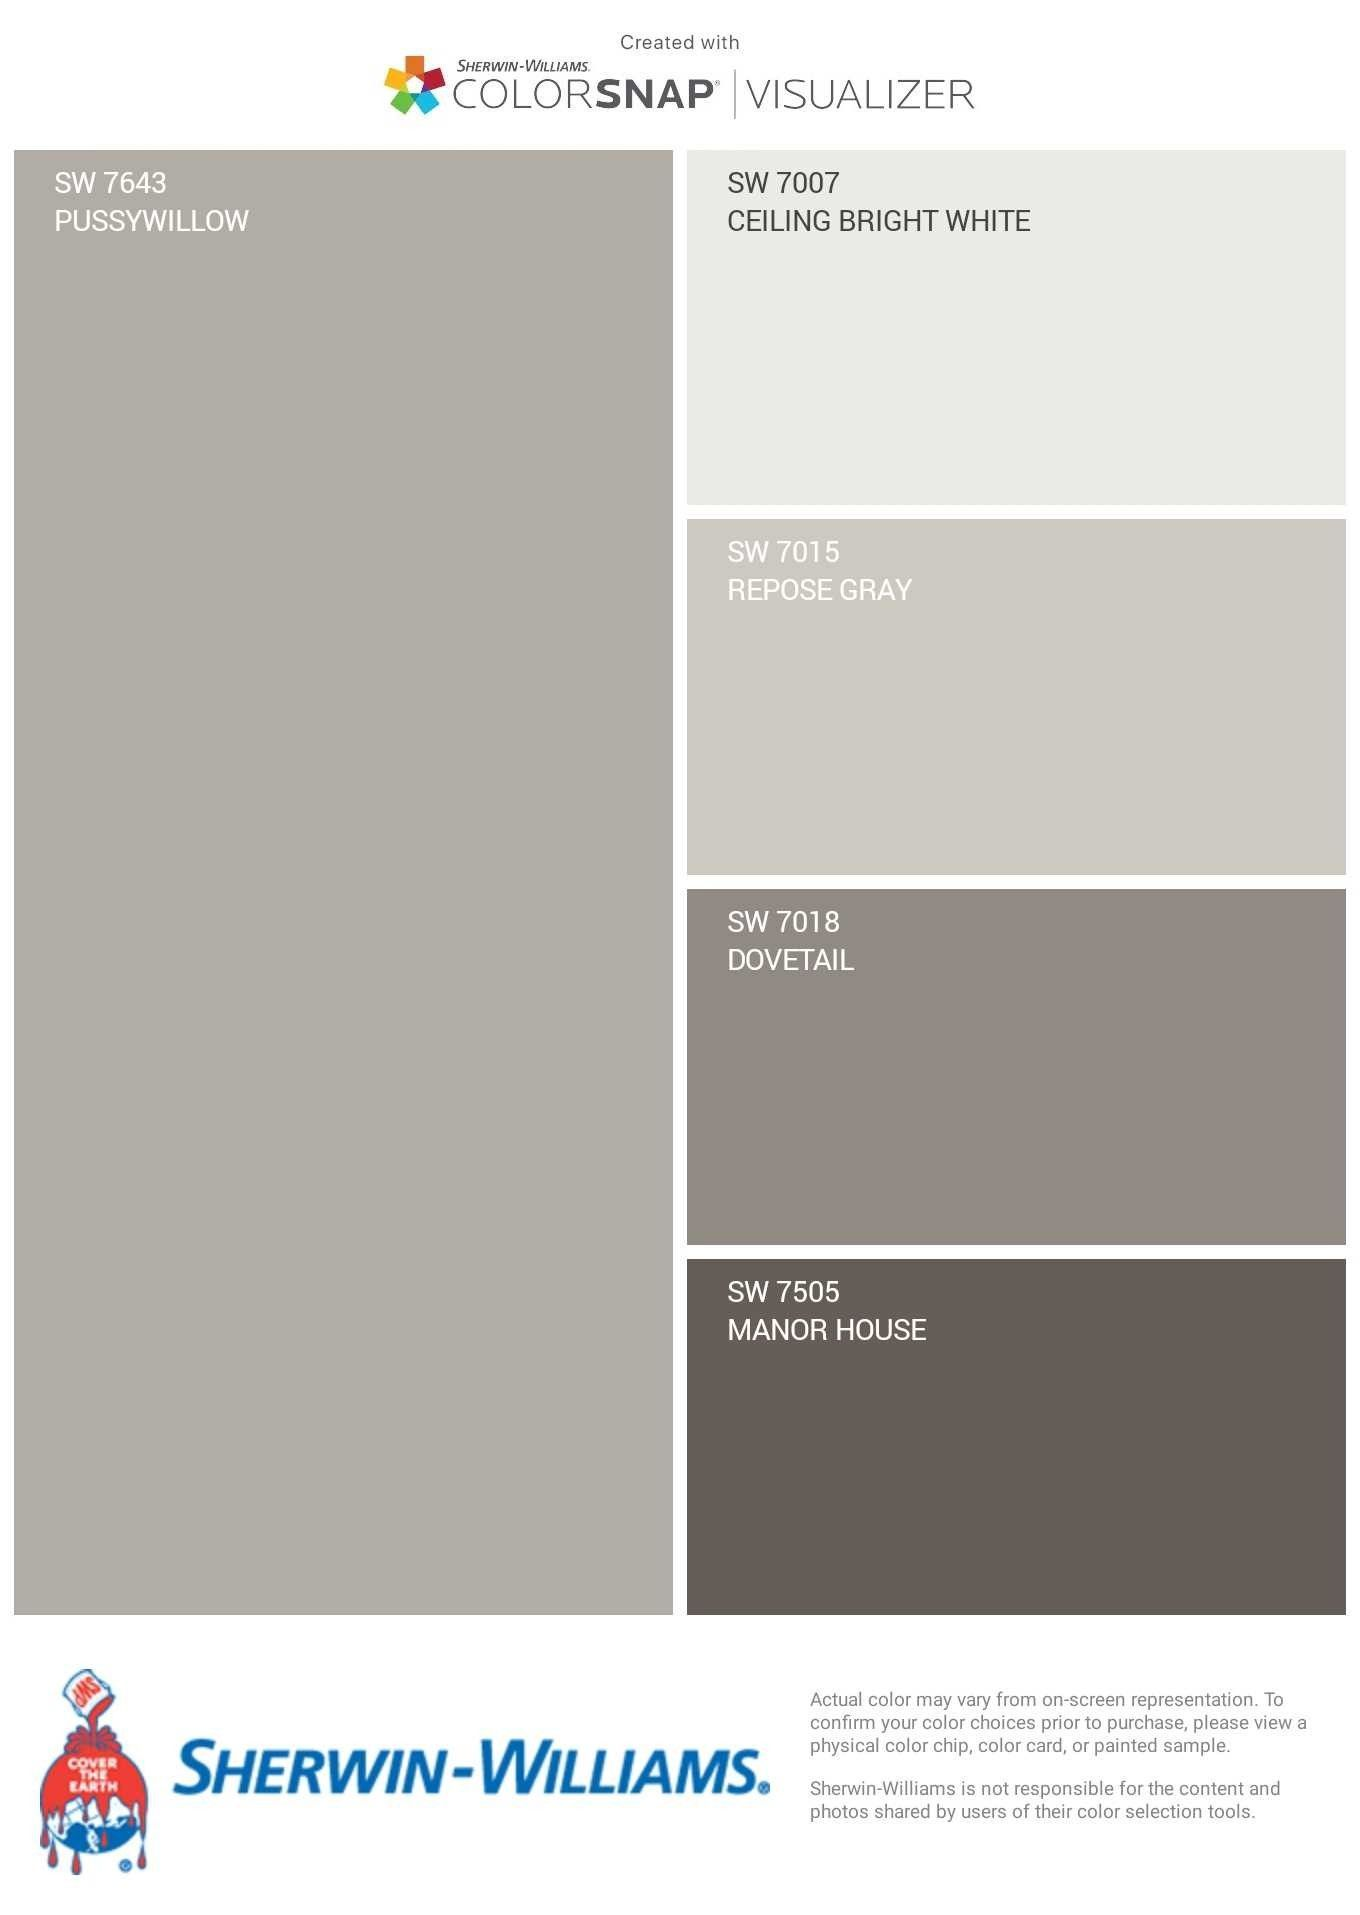 Grey Greige Colors For Kitchen Cabinets And Walls White Trim Pussywillow On Walls Repose On Top Kitche Kitchen Colors Kitchen Cabinet Colors Greige Kitchen